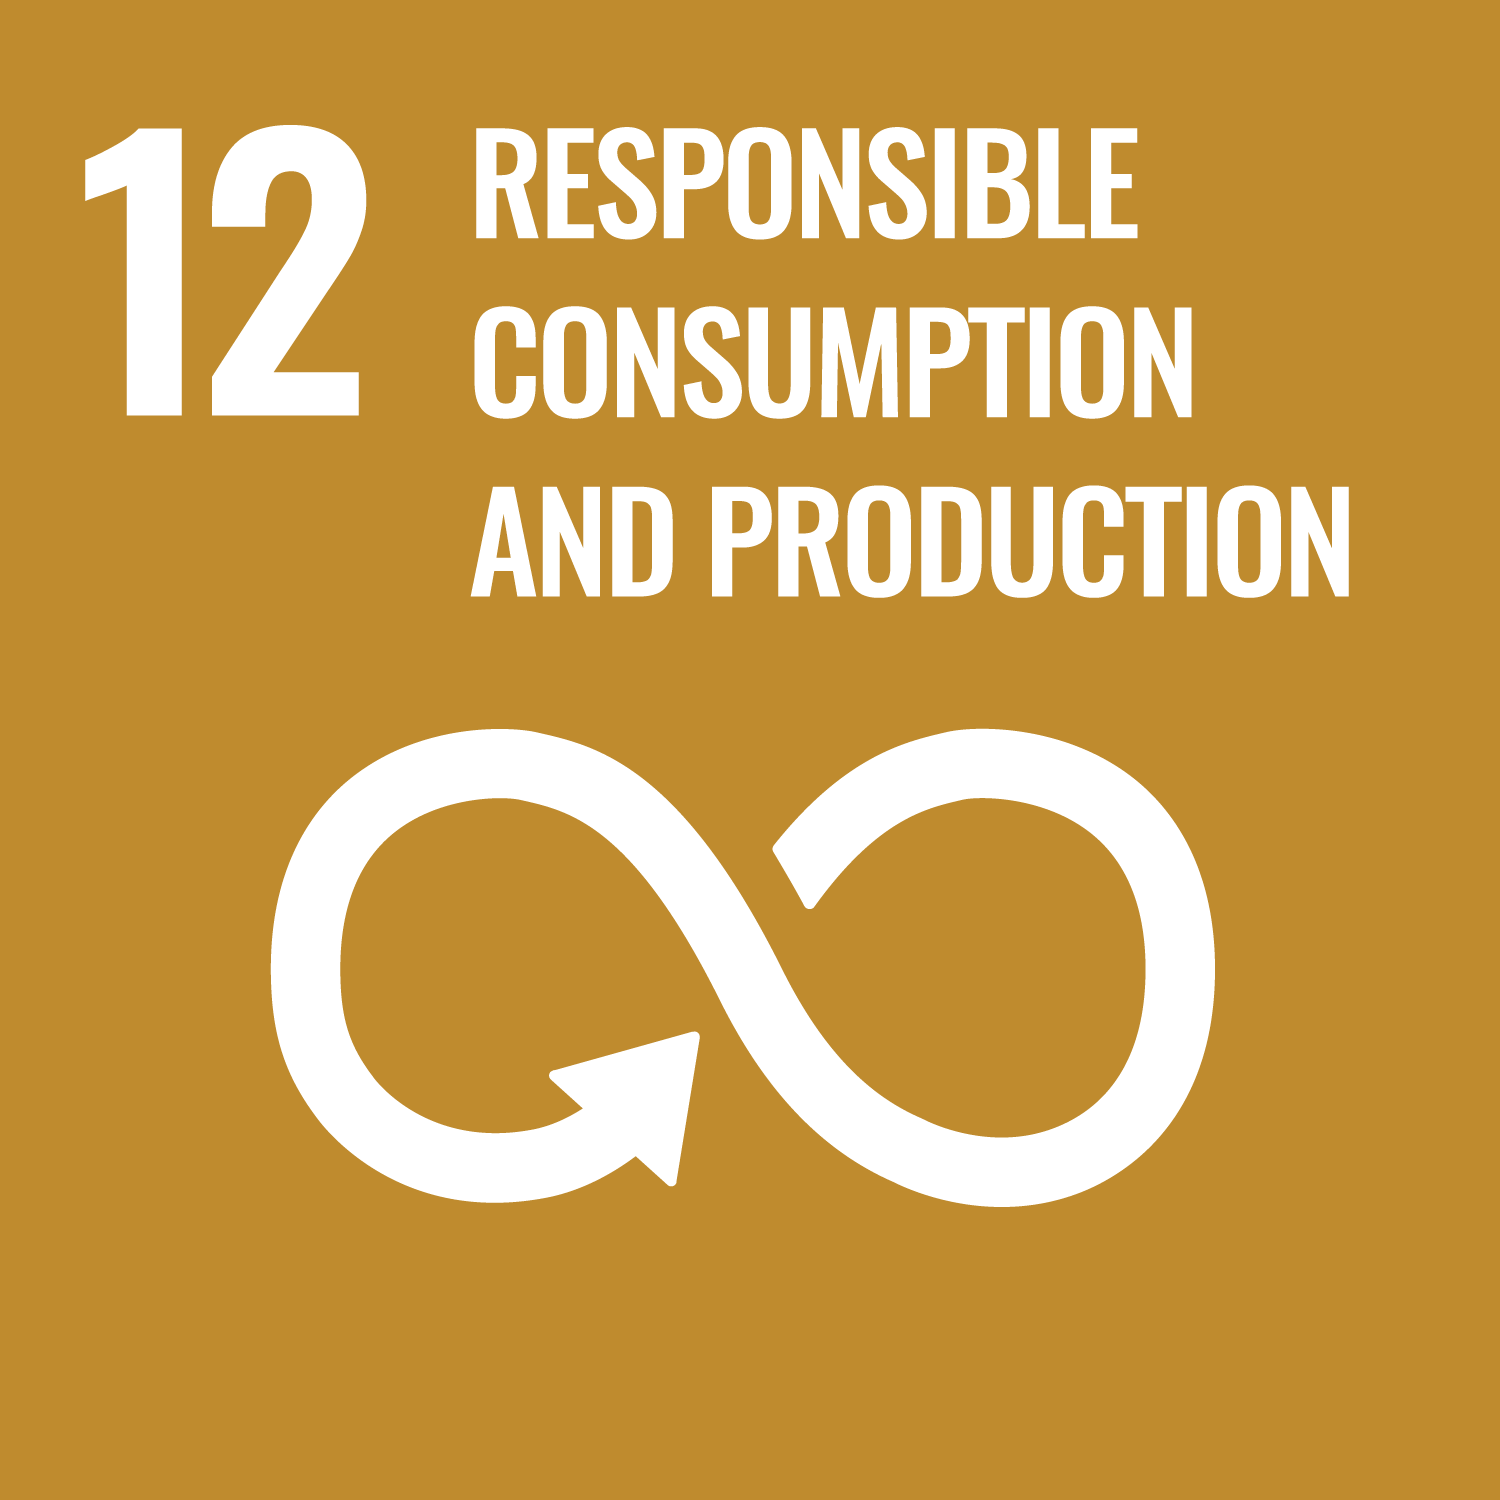 Responsible Consumption and Production Image